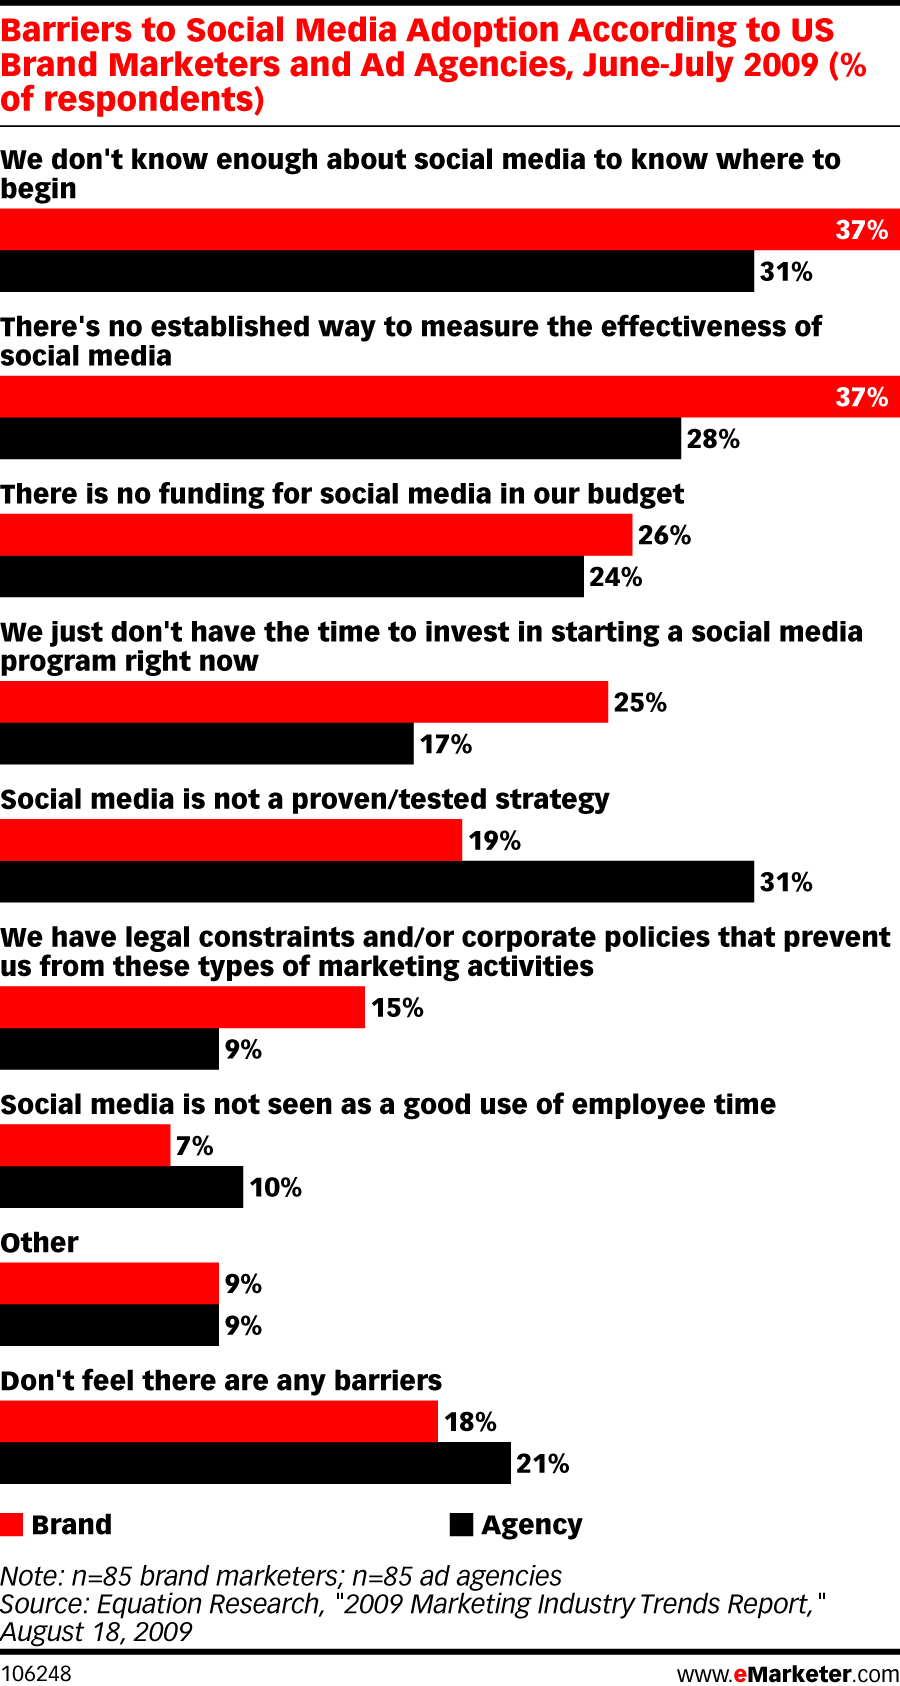 Barriers to Social Media Adoption